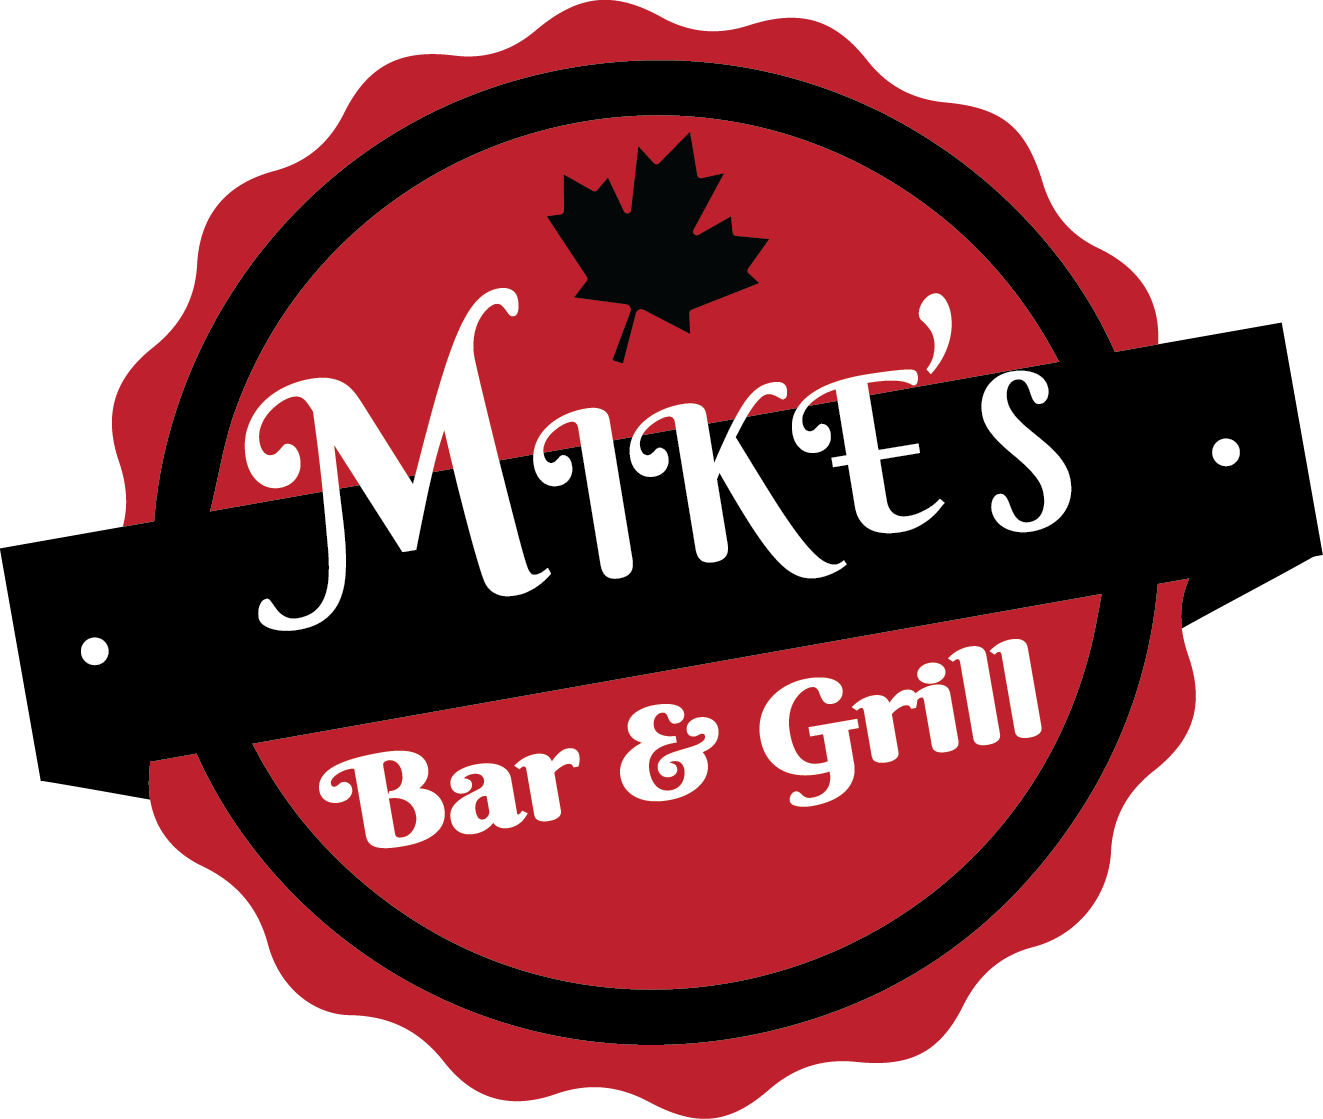 Mike's Bar & Grill